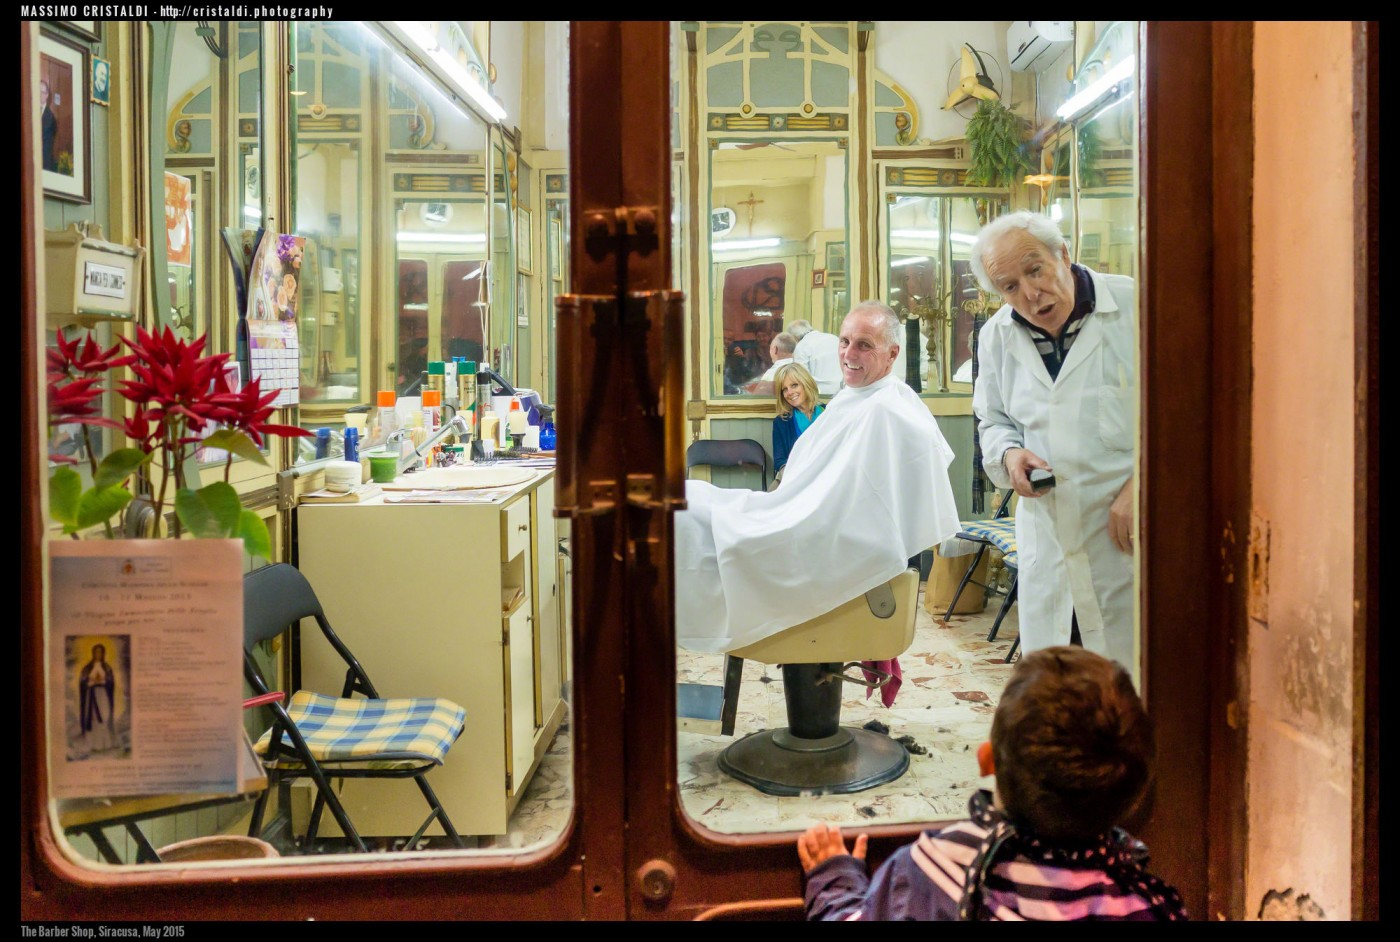 02-The Barber Shop, Siracusa, May 2015